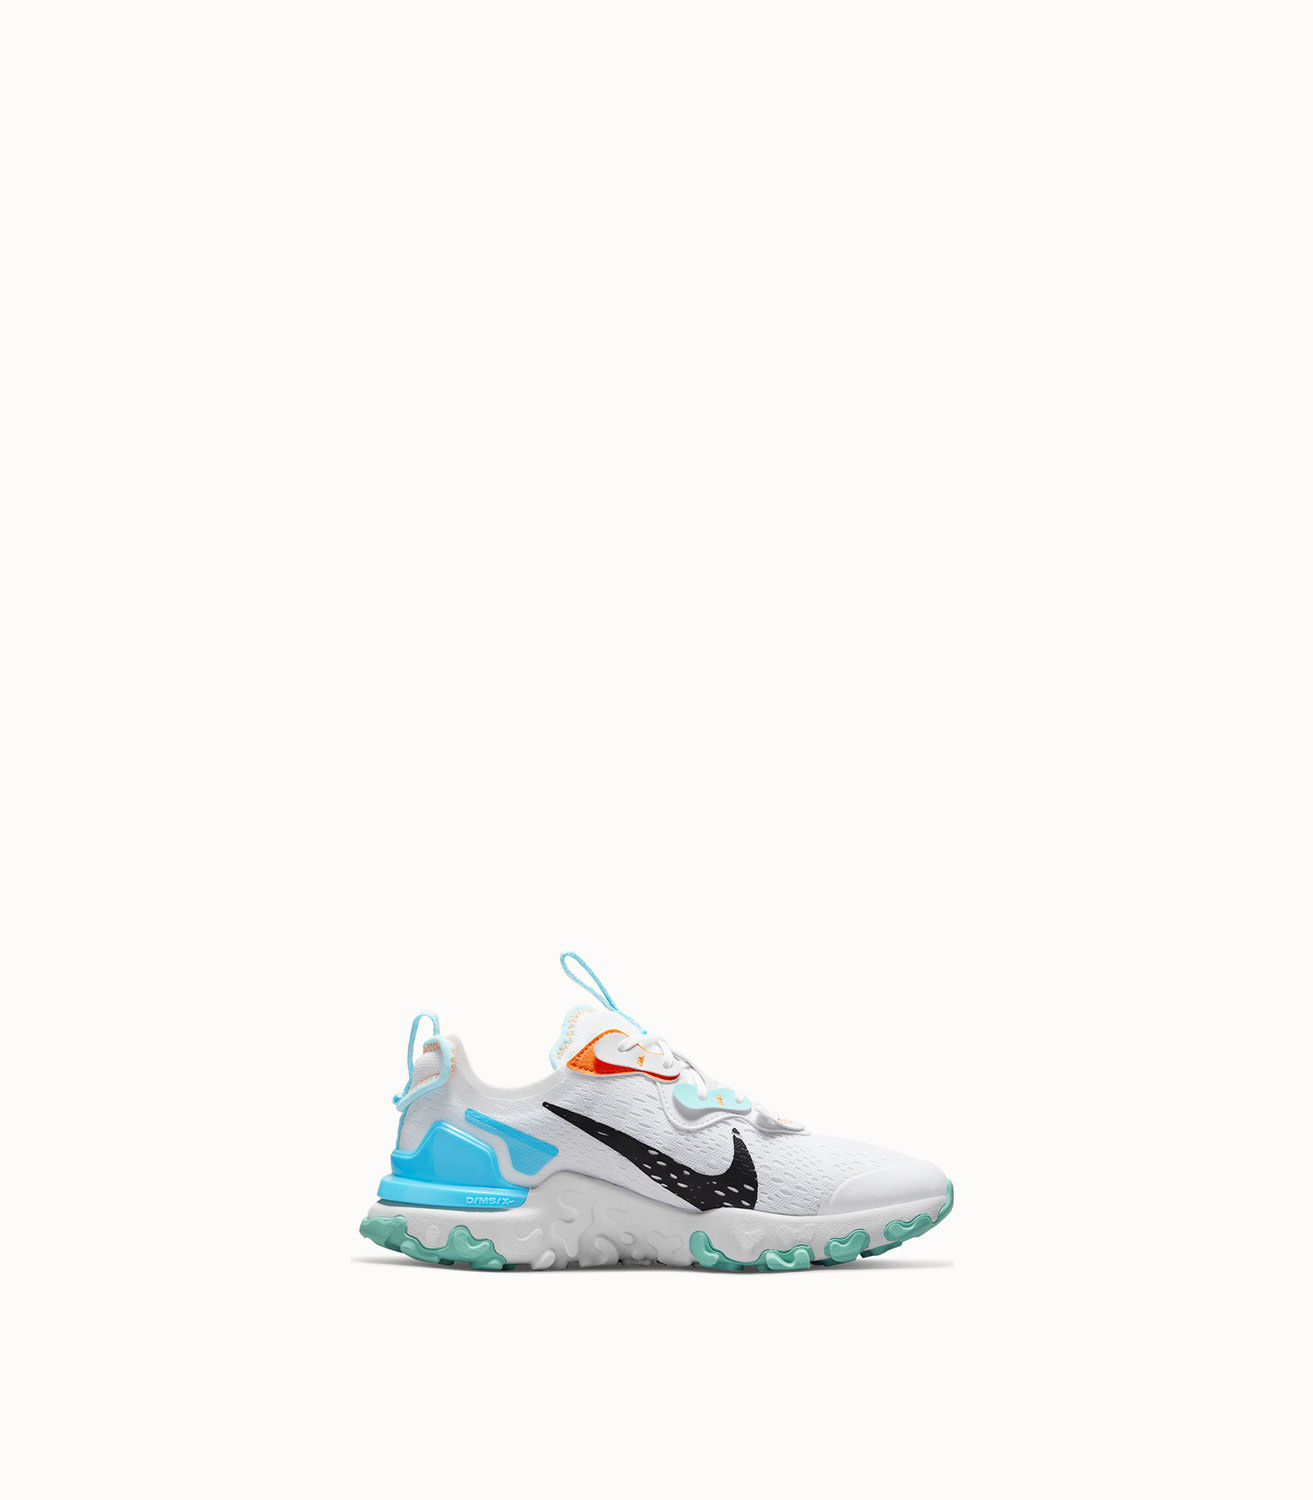 REACT VISION (GS) SNEAKERS COLOR WHITE